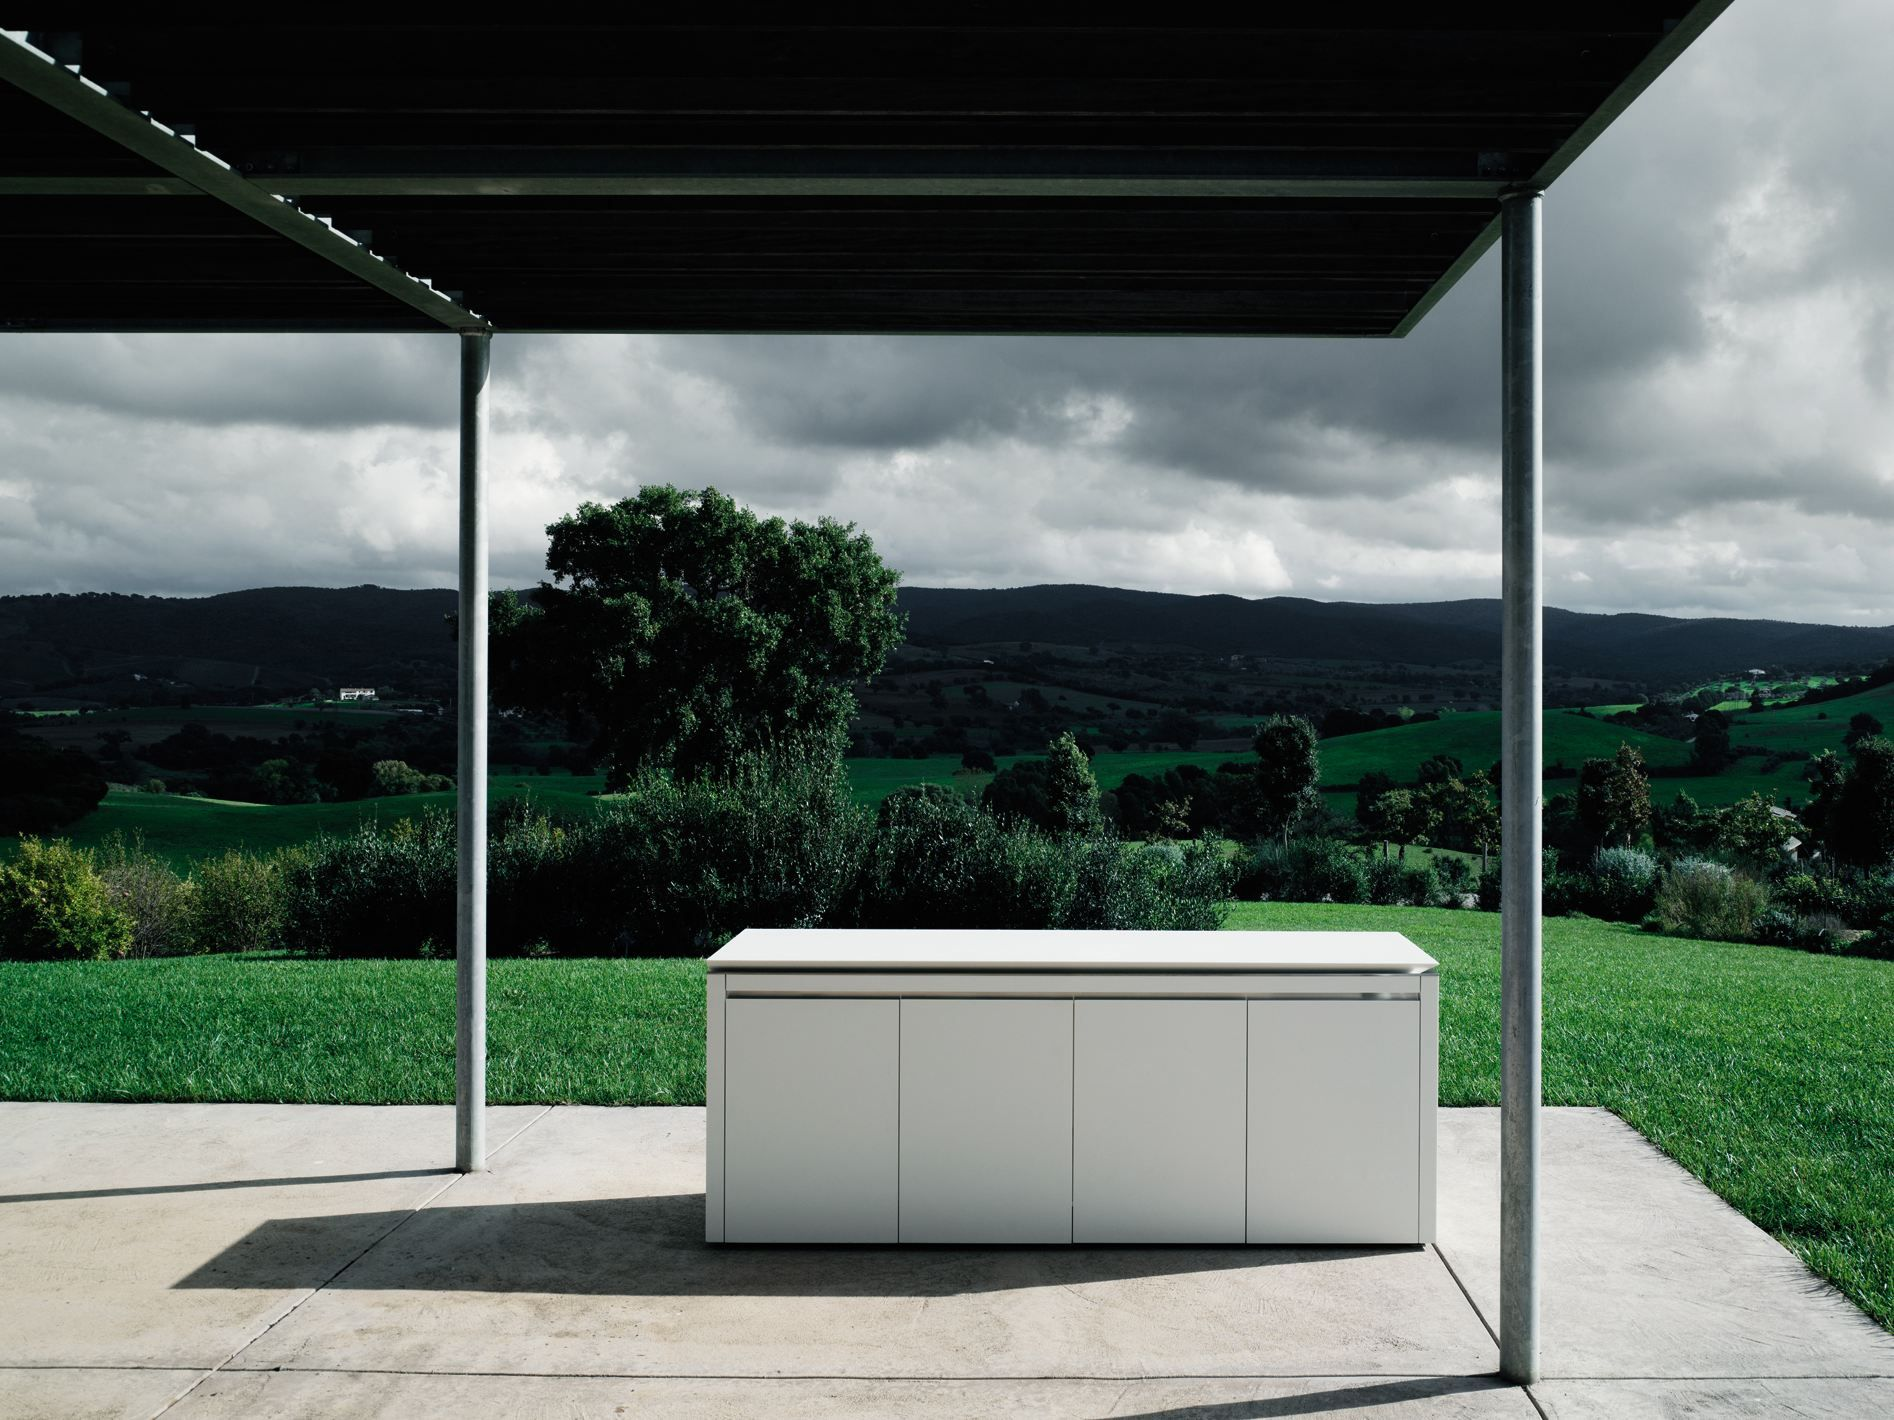 corian® outdoor kitchen k2 outdoor by boffi | design norbert, Innenarchitektur ideen